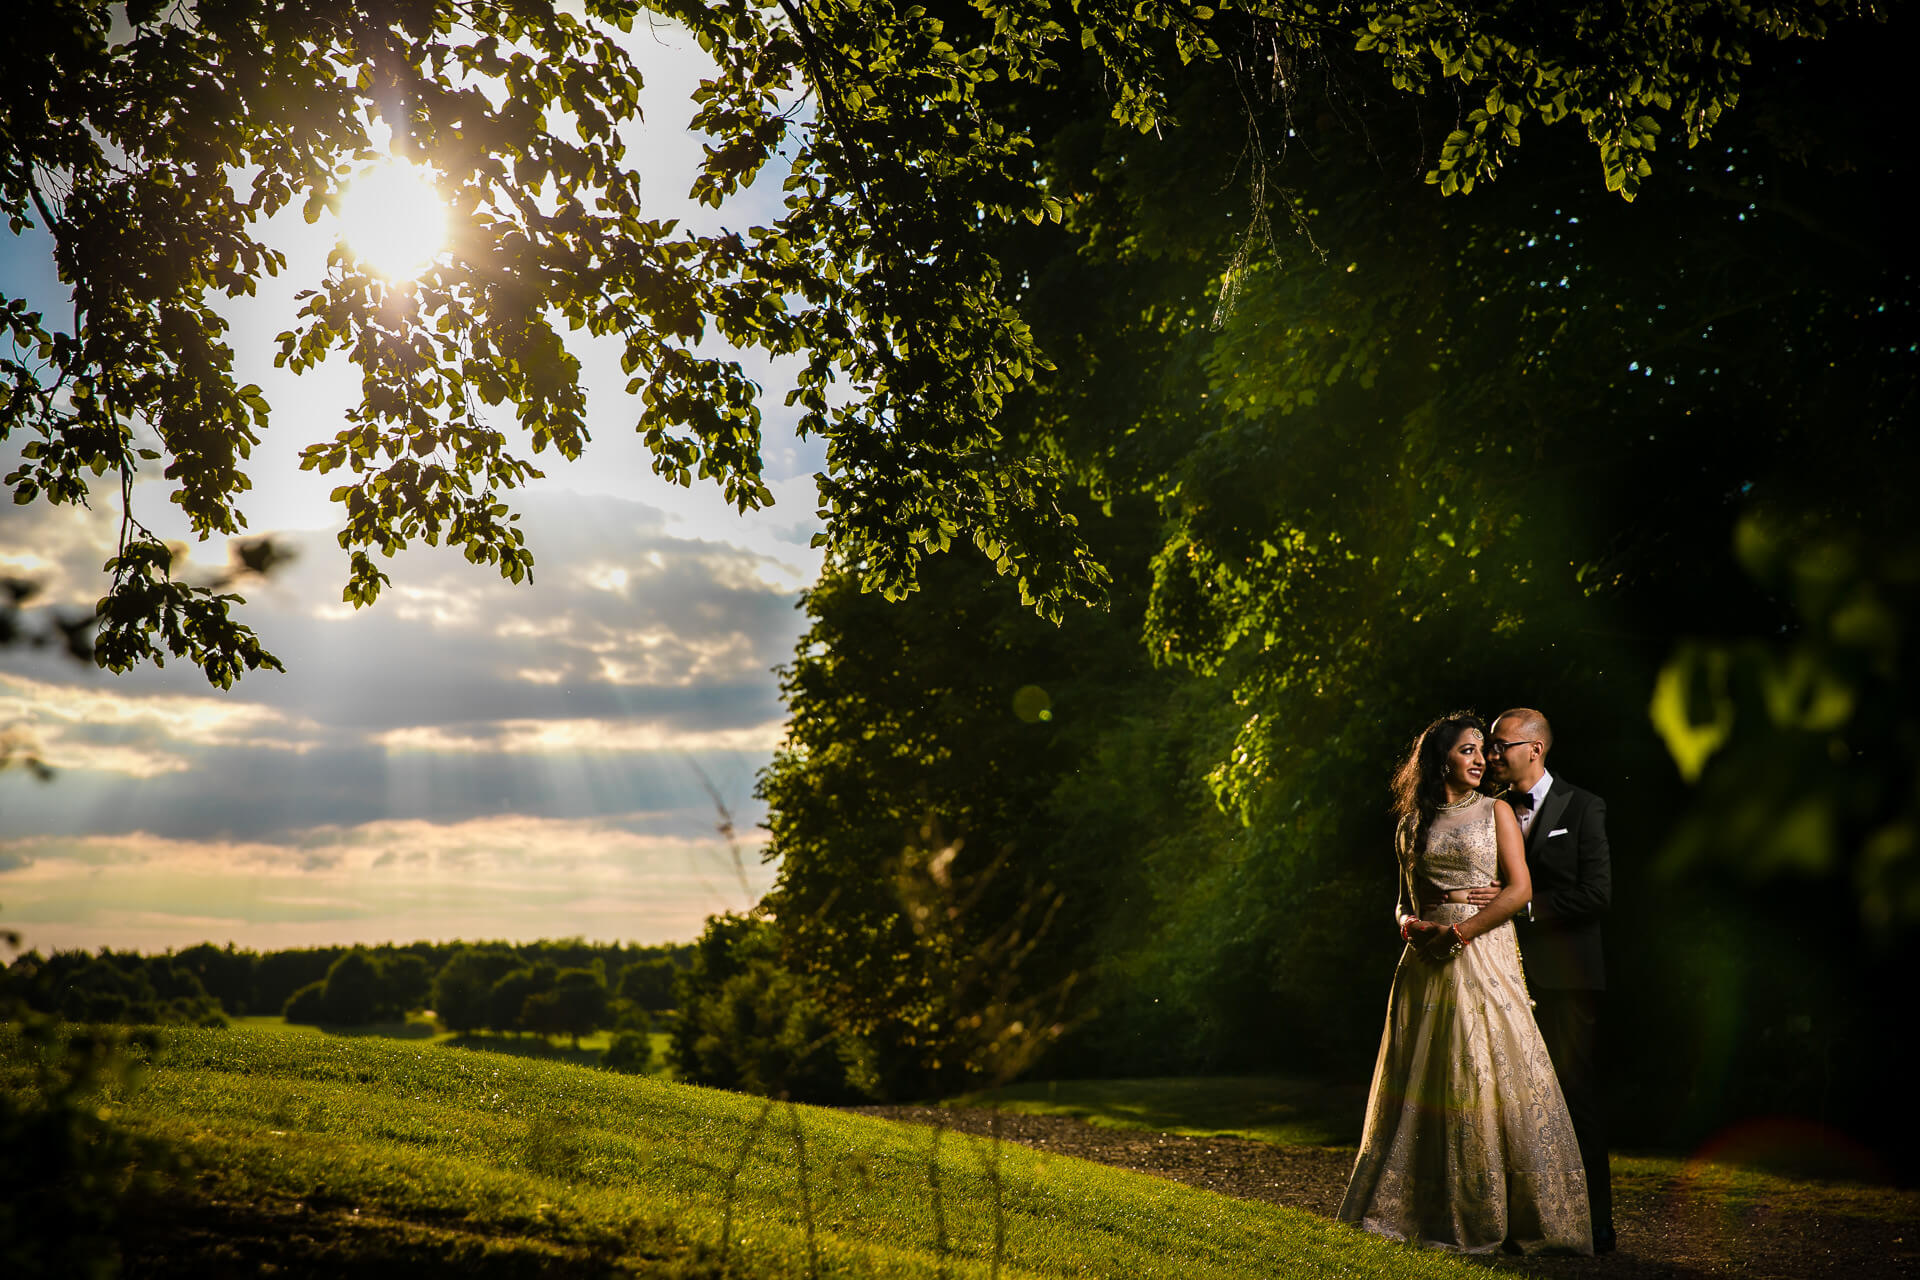 Wedding portrait at Manor of Groves